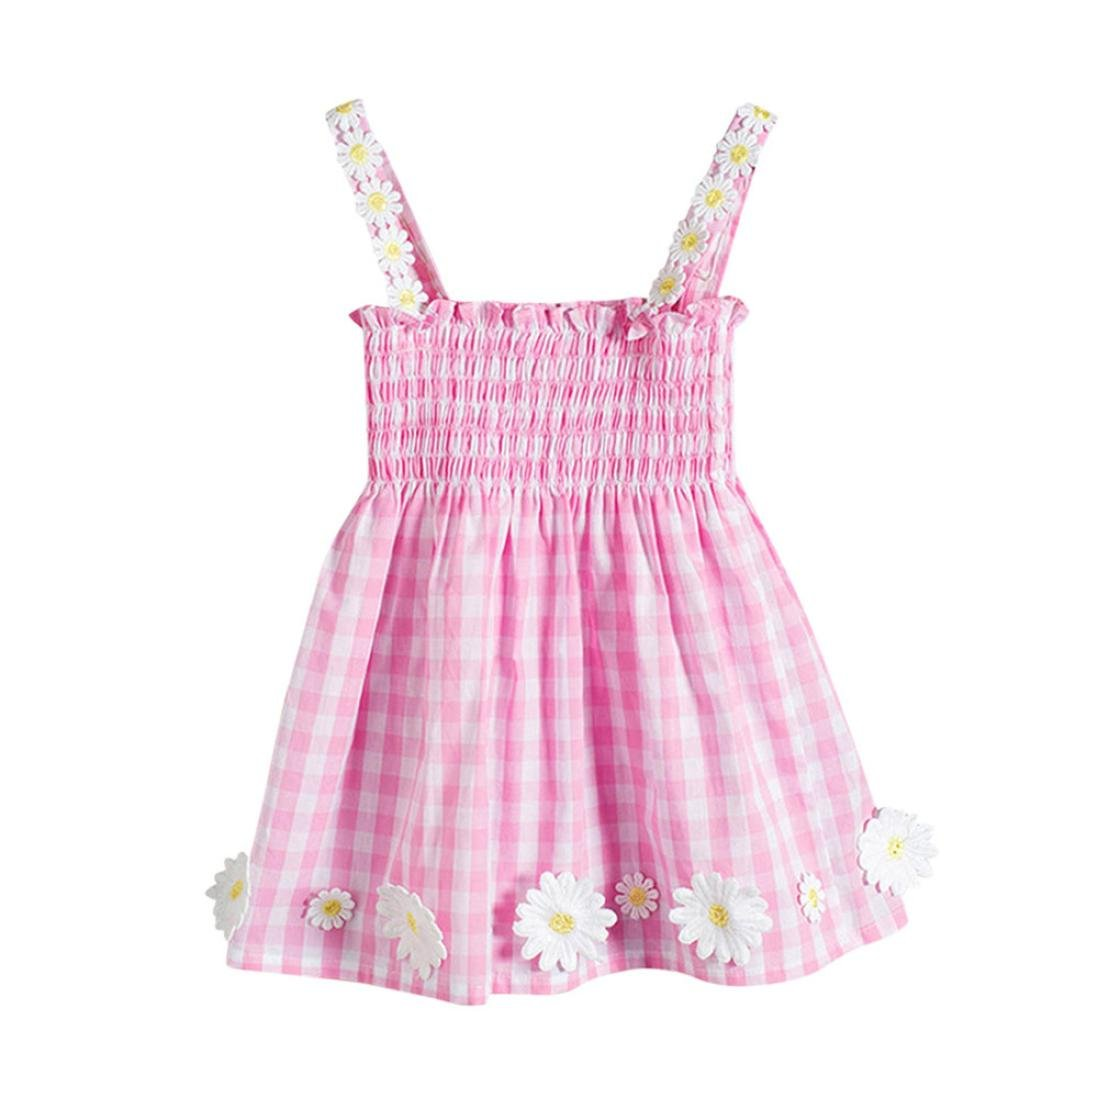 Baby Girls Clothes Toddler Infant Girls Lattice Flowers Mini Dress Summer Cute Sundress Outfits Gift (6-12Months, Blue) LMMVP